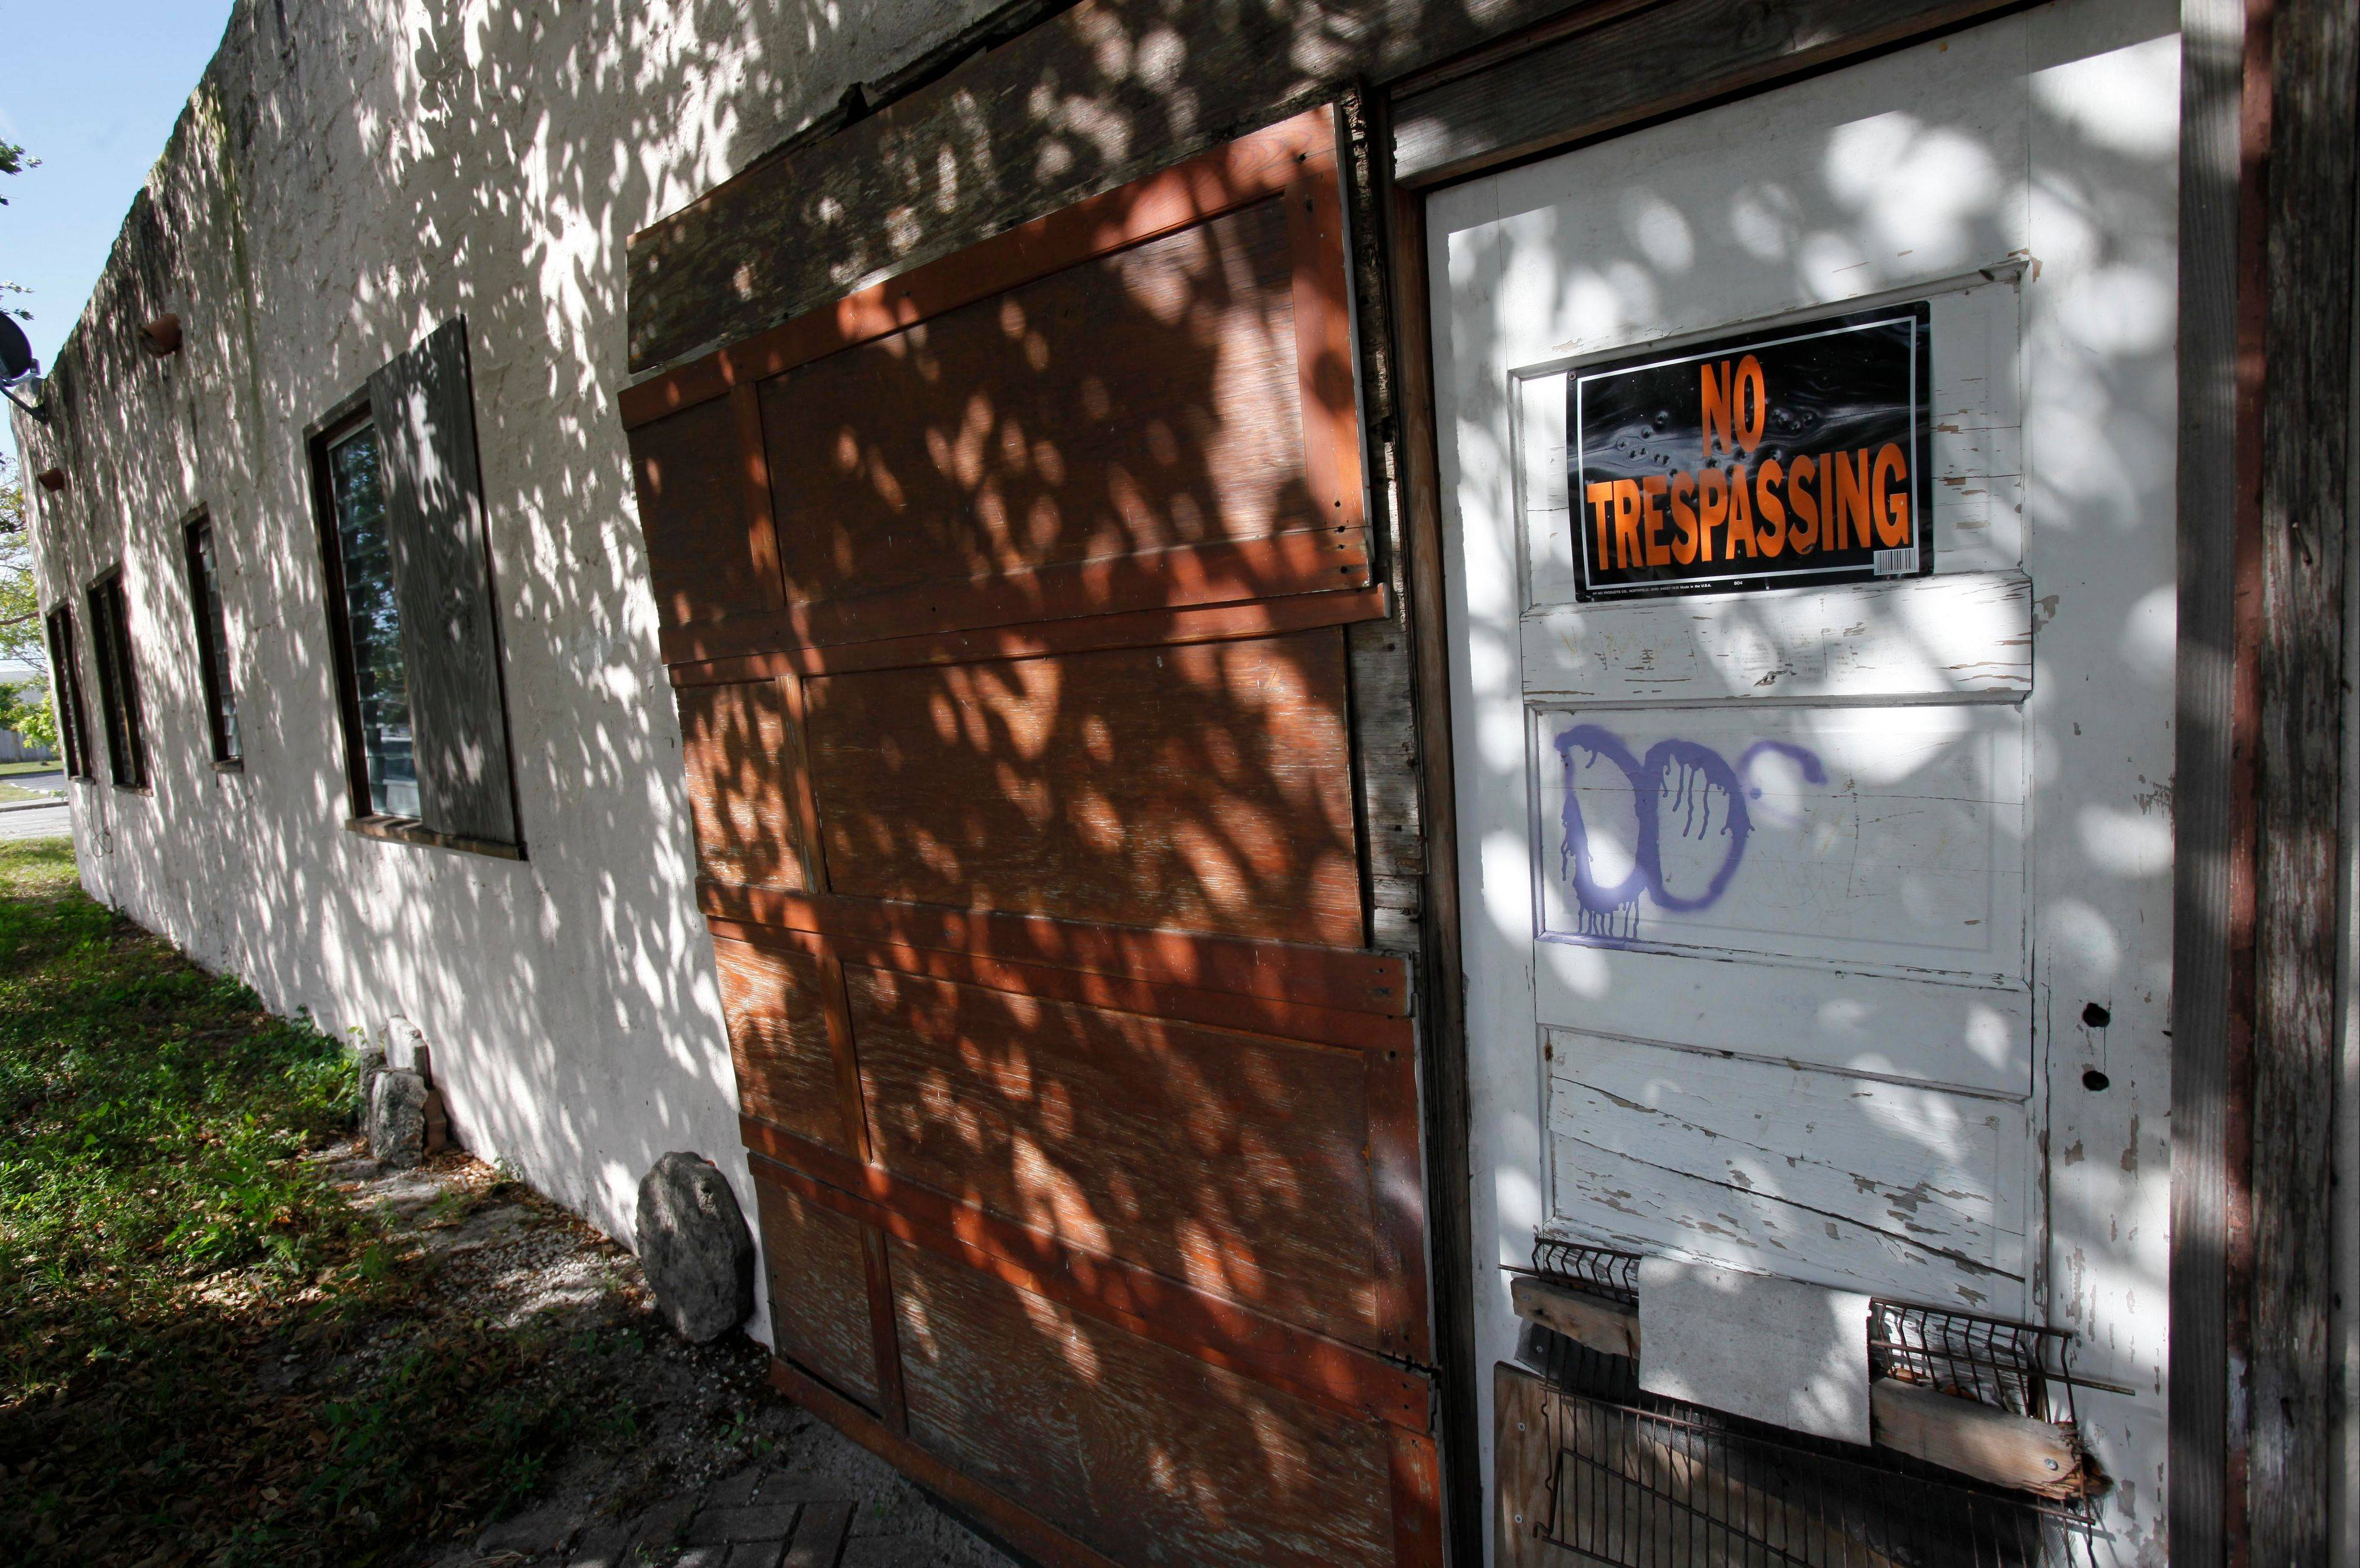 Thrashed by the mortgage and foreclosure disaster, Florida has thousands of distressed properties. But figuring out just how many is not so simple. Each month, analysts issue reports detailing the number of homes nationwide in foreclosure or held by banks. The implication is that if we can just find a cure for these loans and homes, either by matching buyers with houses or helping the borrowers stay put, the economy will at last be able to heal.